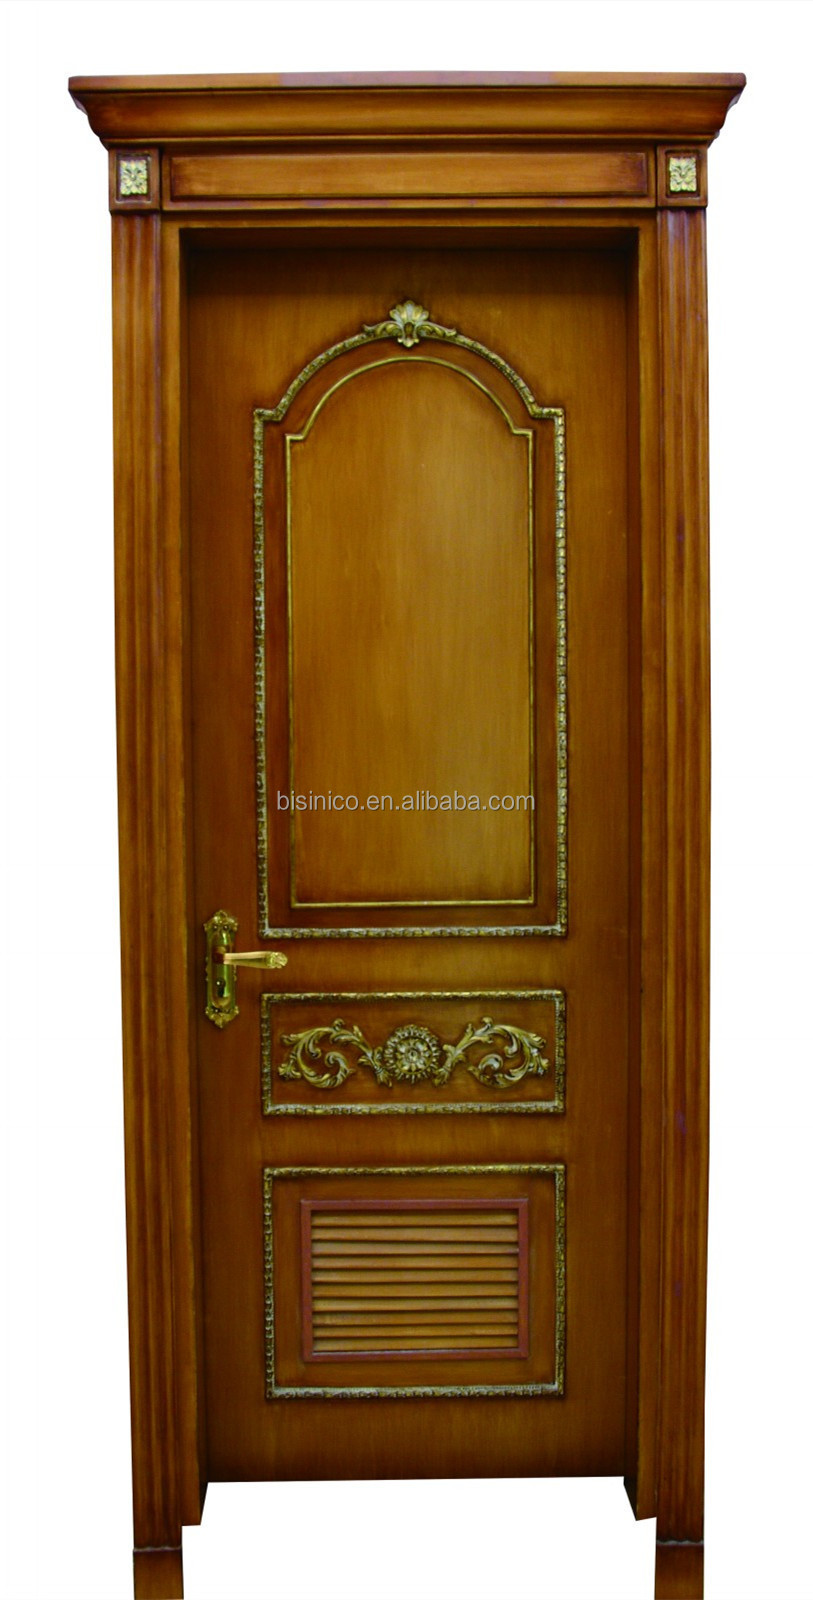 French baroque furniture - French Baroque Style Solid Wood Hand Carved Interior Door High Quality Antique Finish Beige Decorative